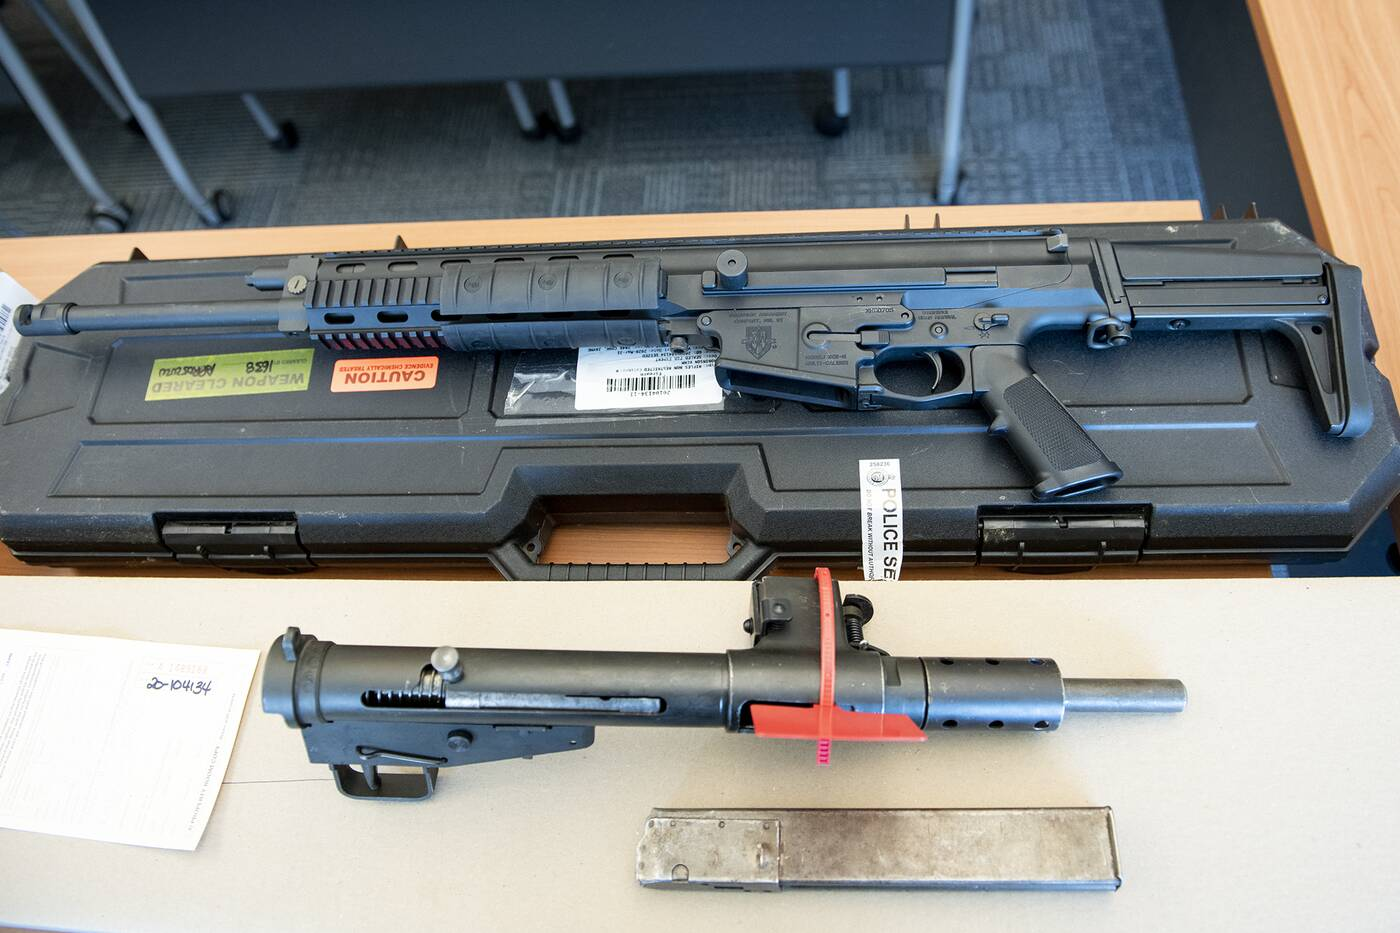 long guns seized by York Regional Police